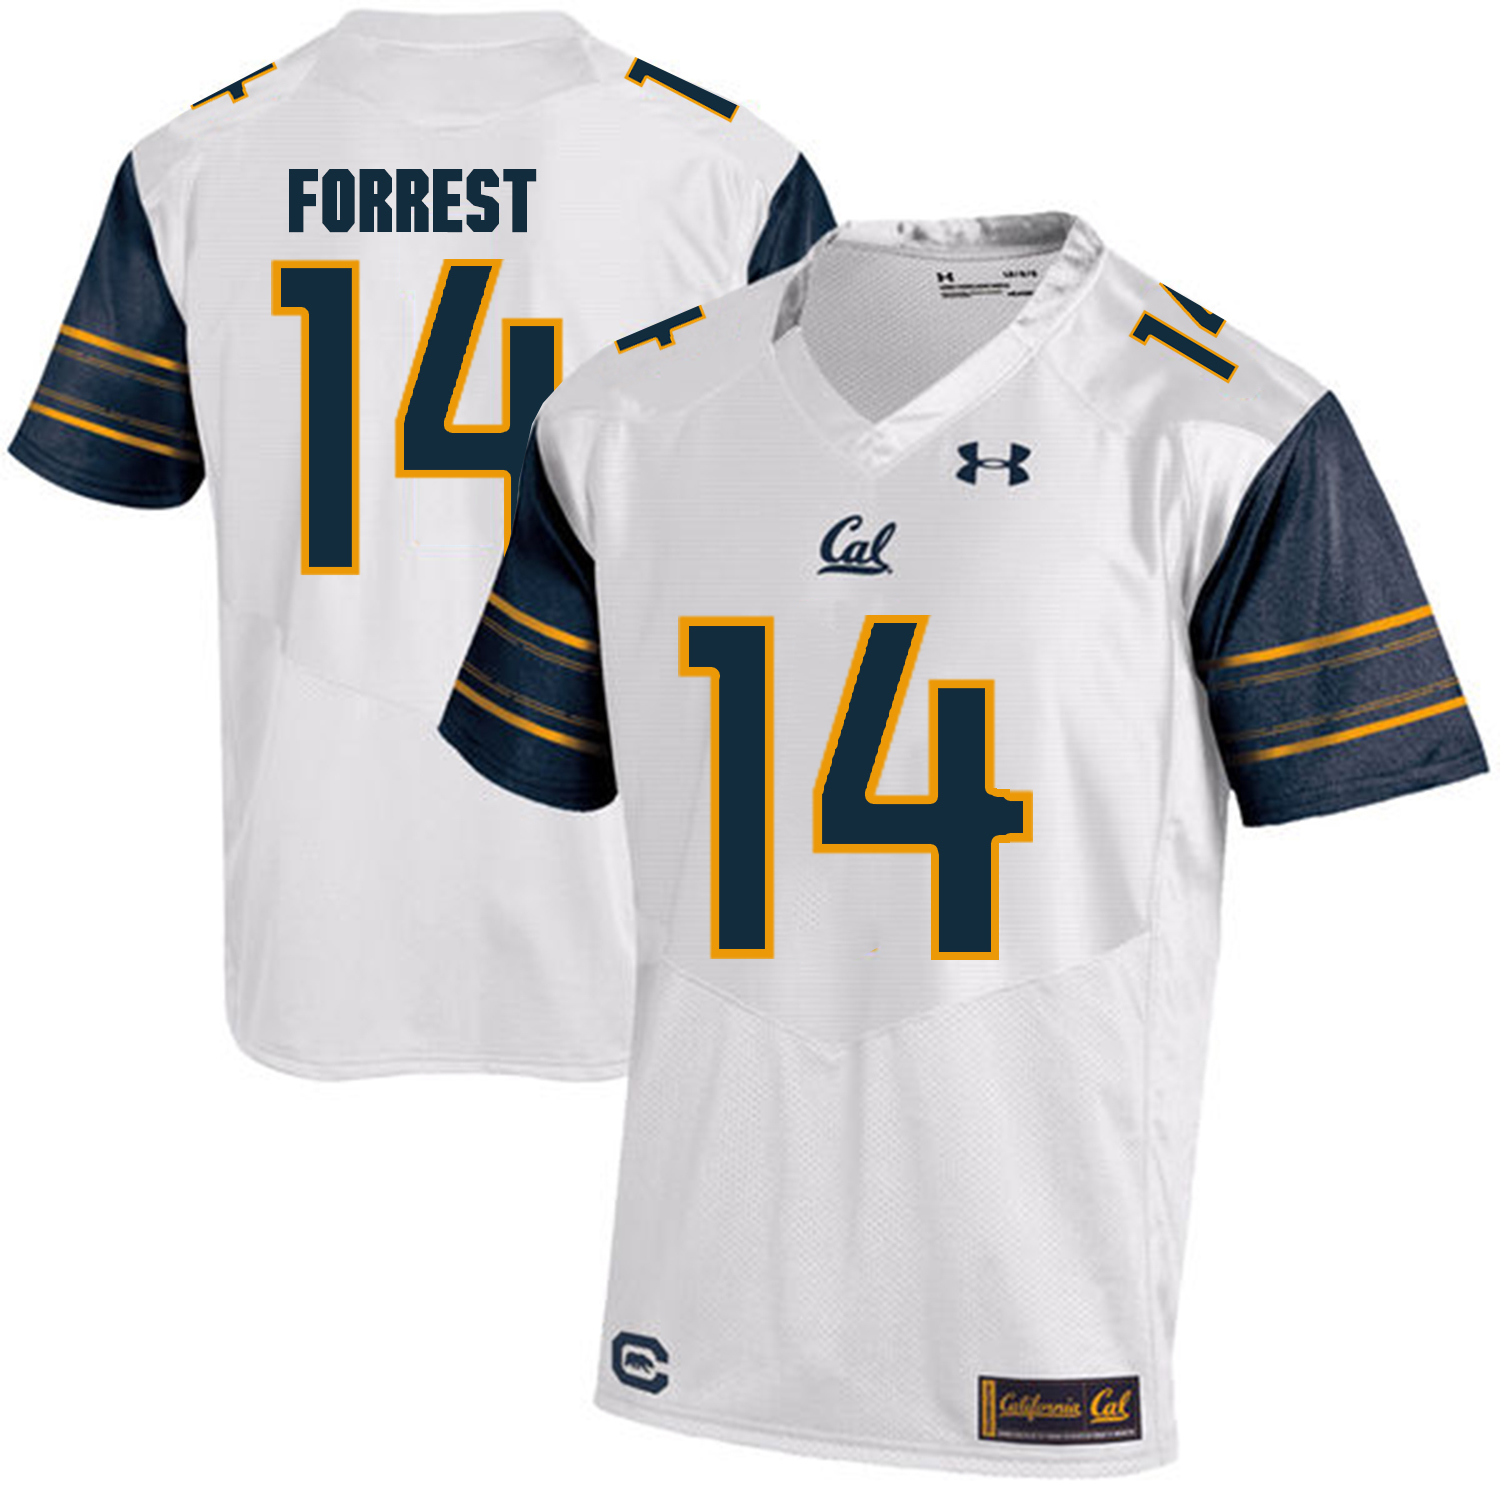 California Golden Bears 14 Chase Forrest White College Football Jersey